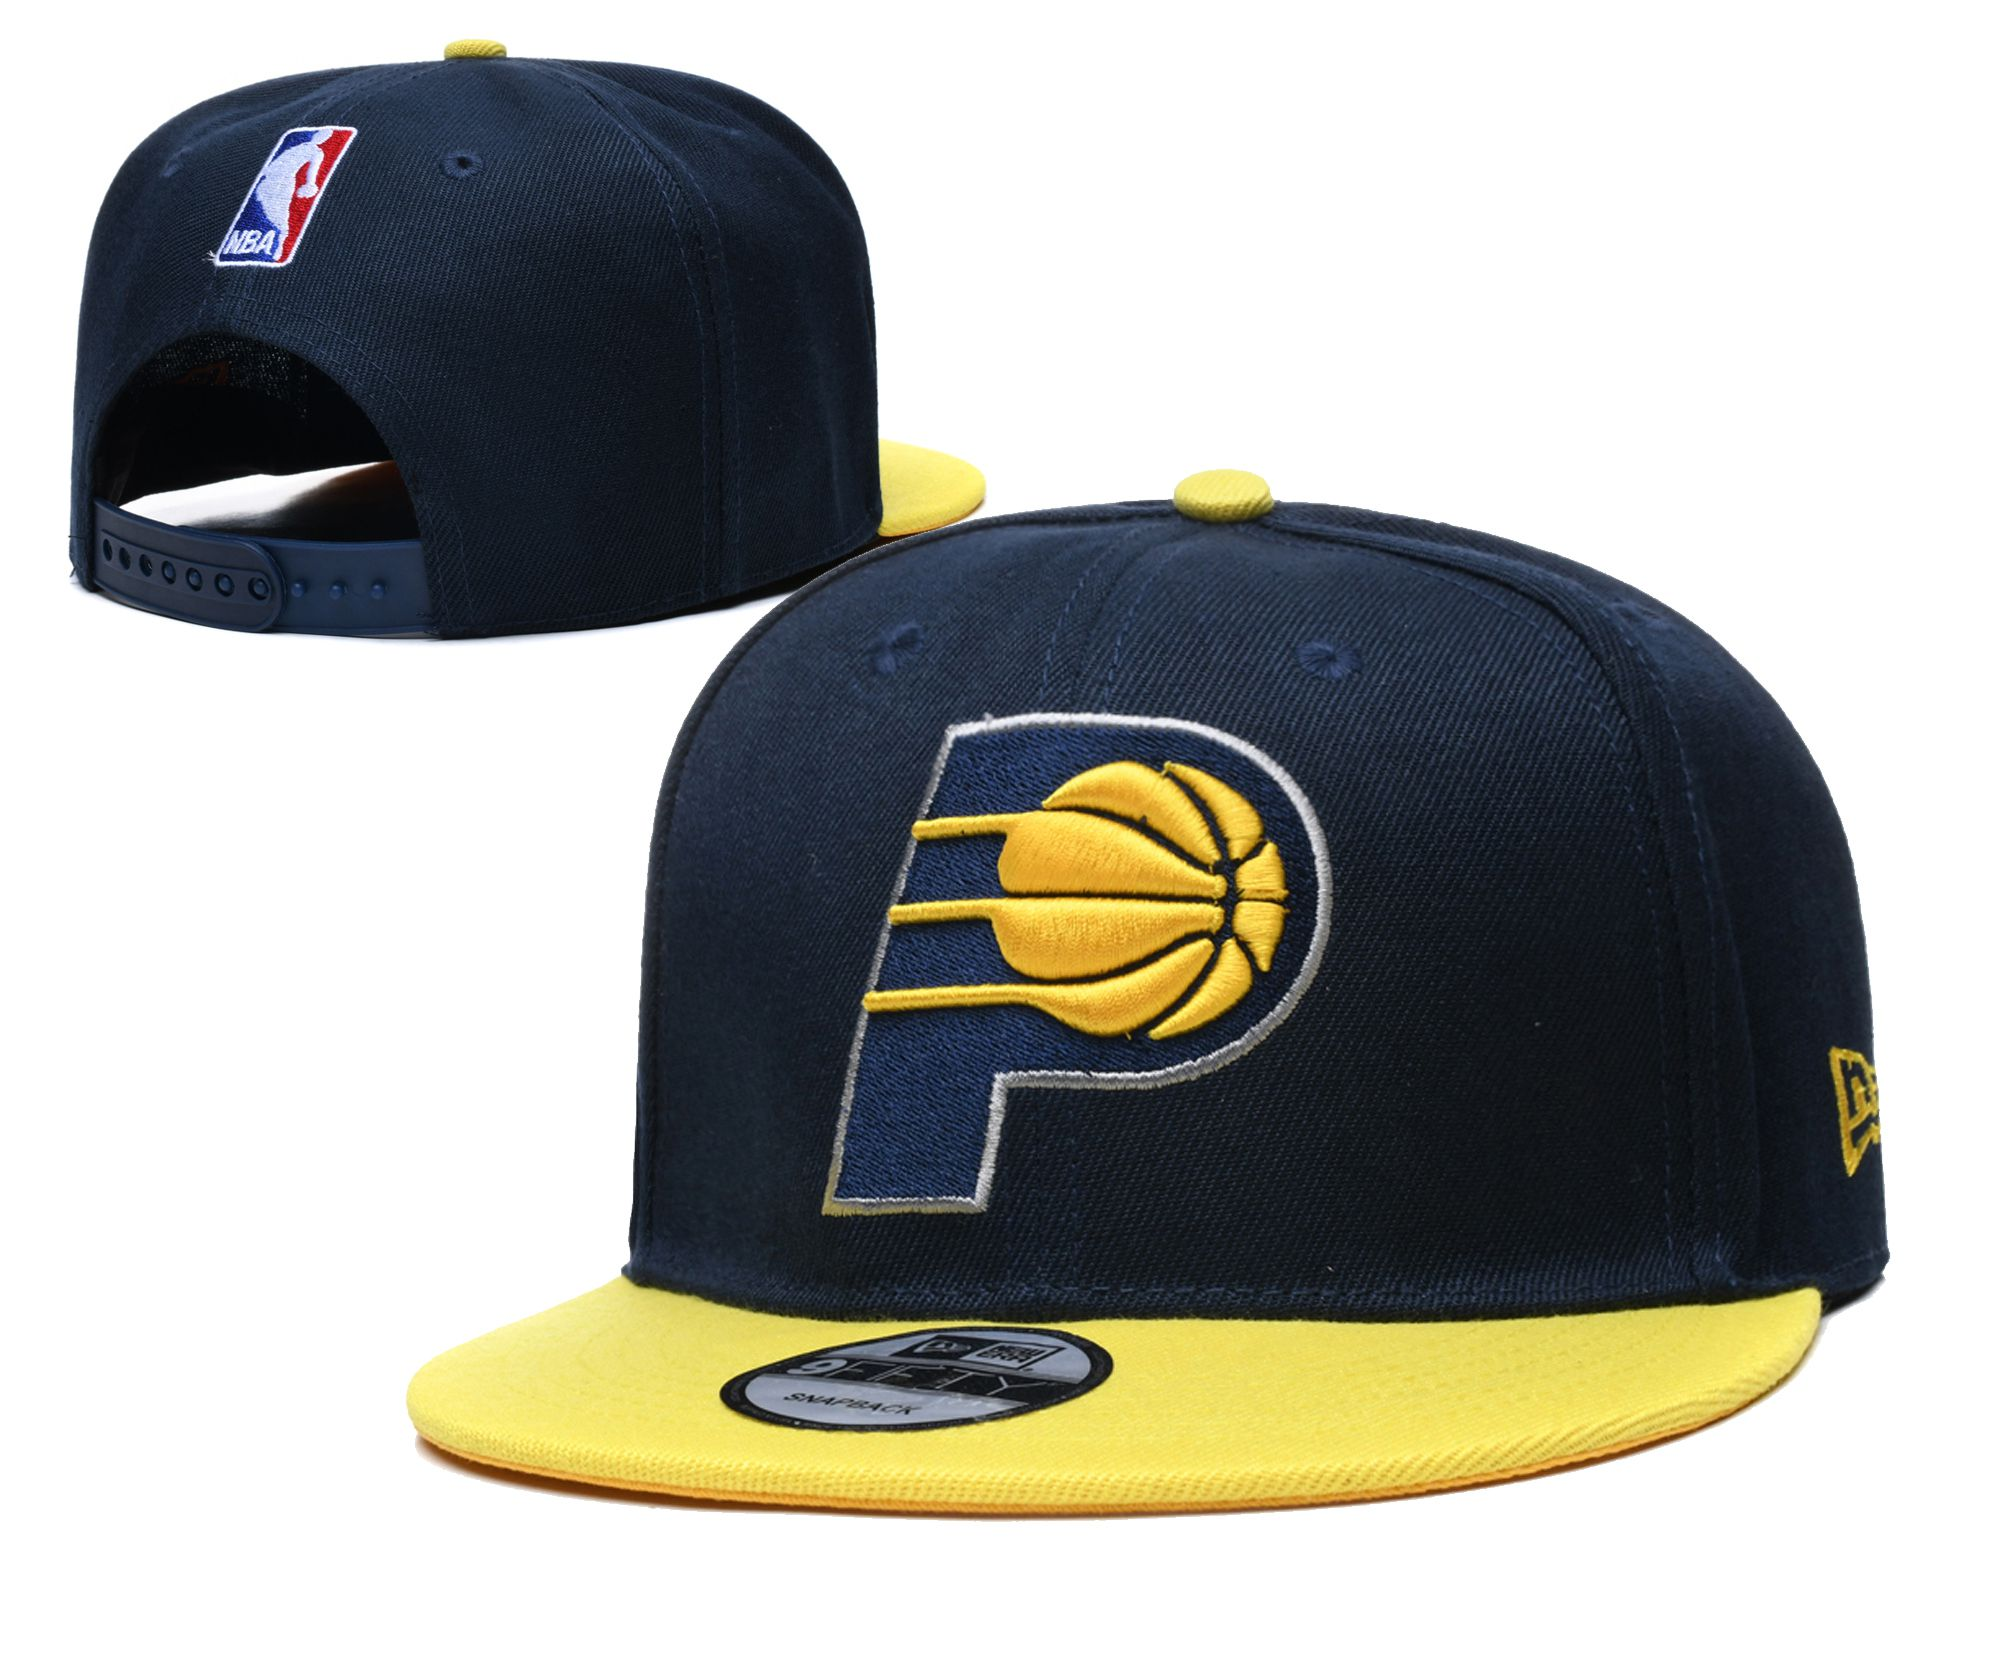 Wholesale 2020 NBA Indiana Pacers Hat 20201191